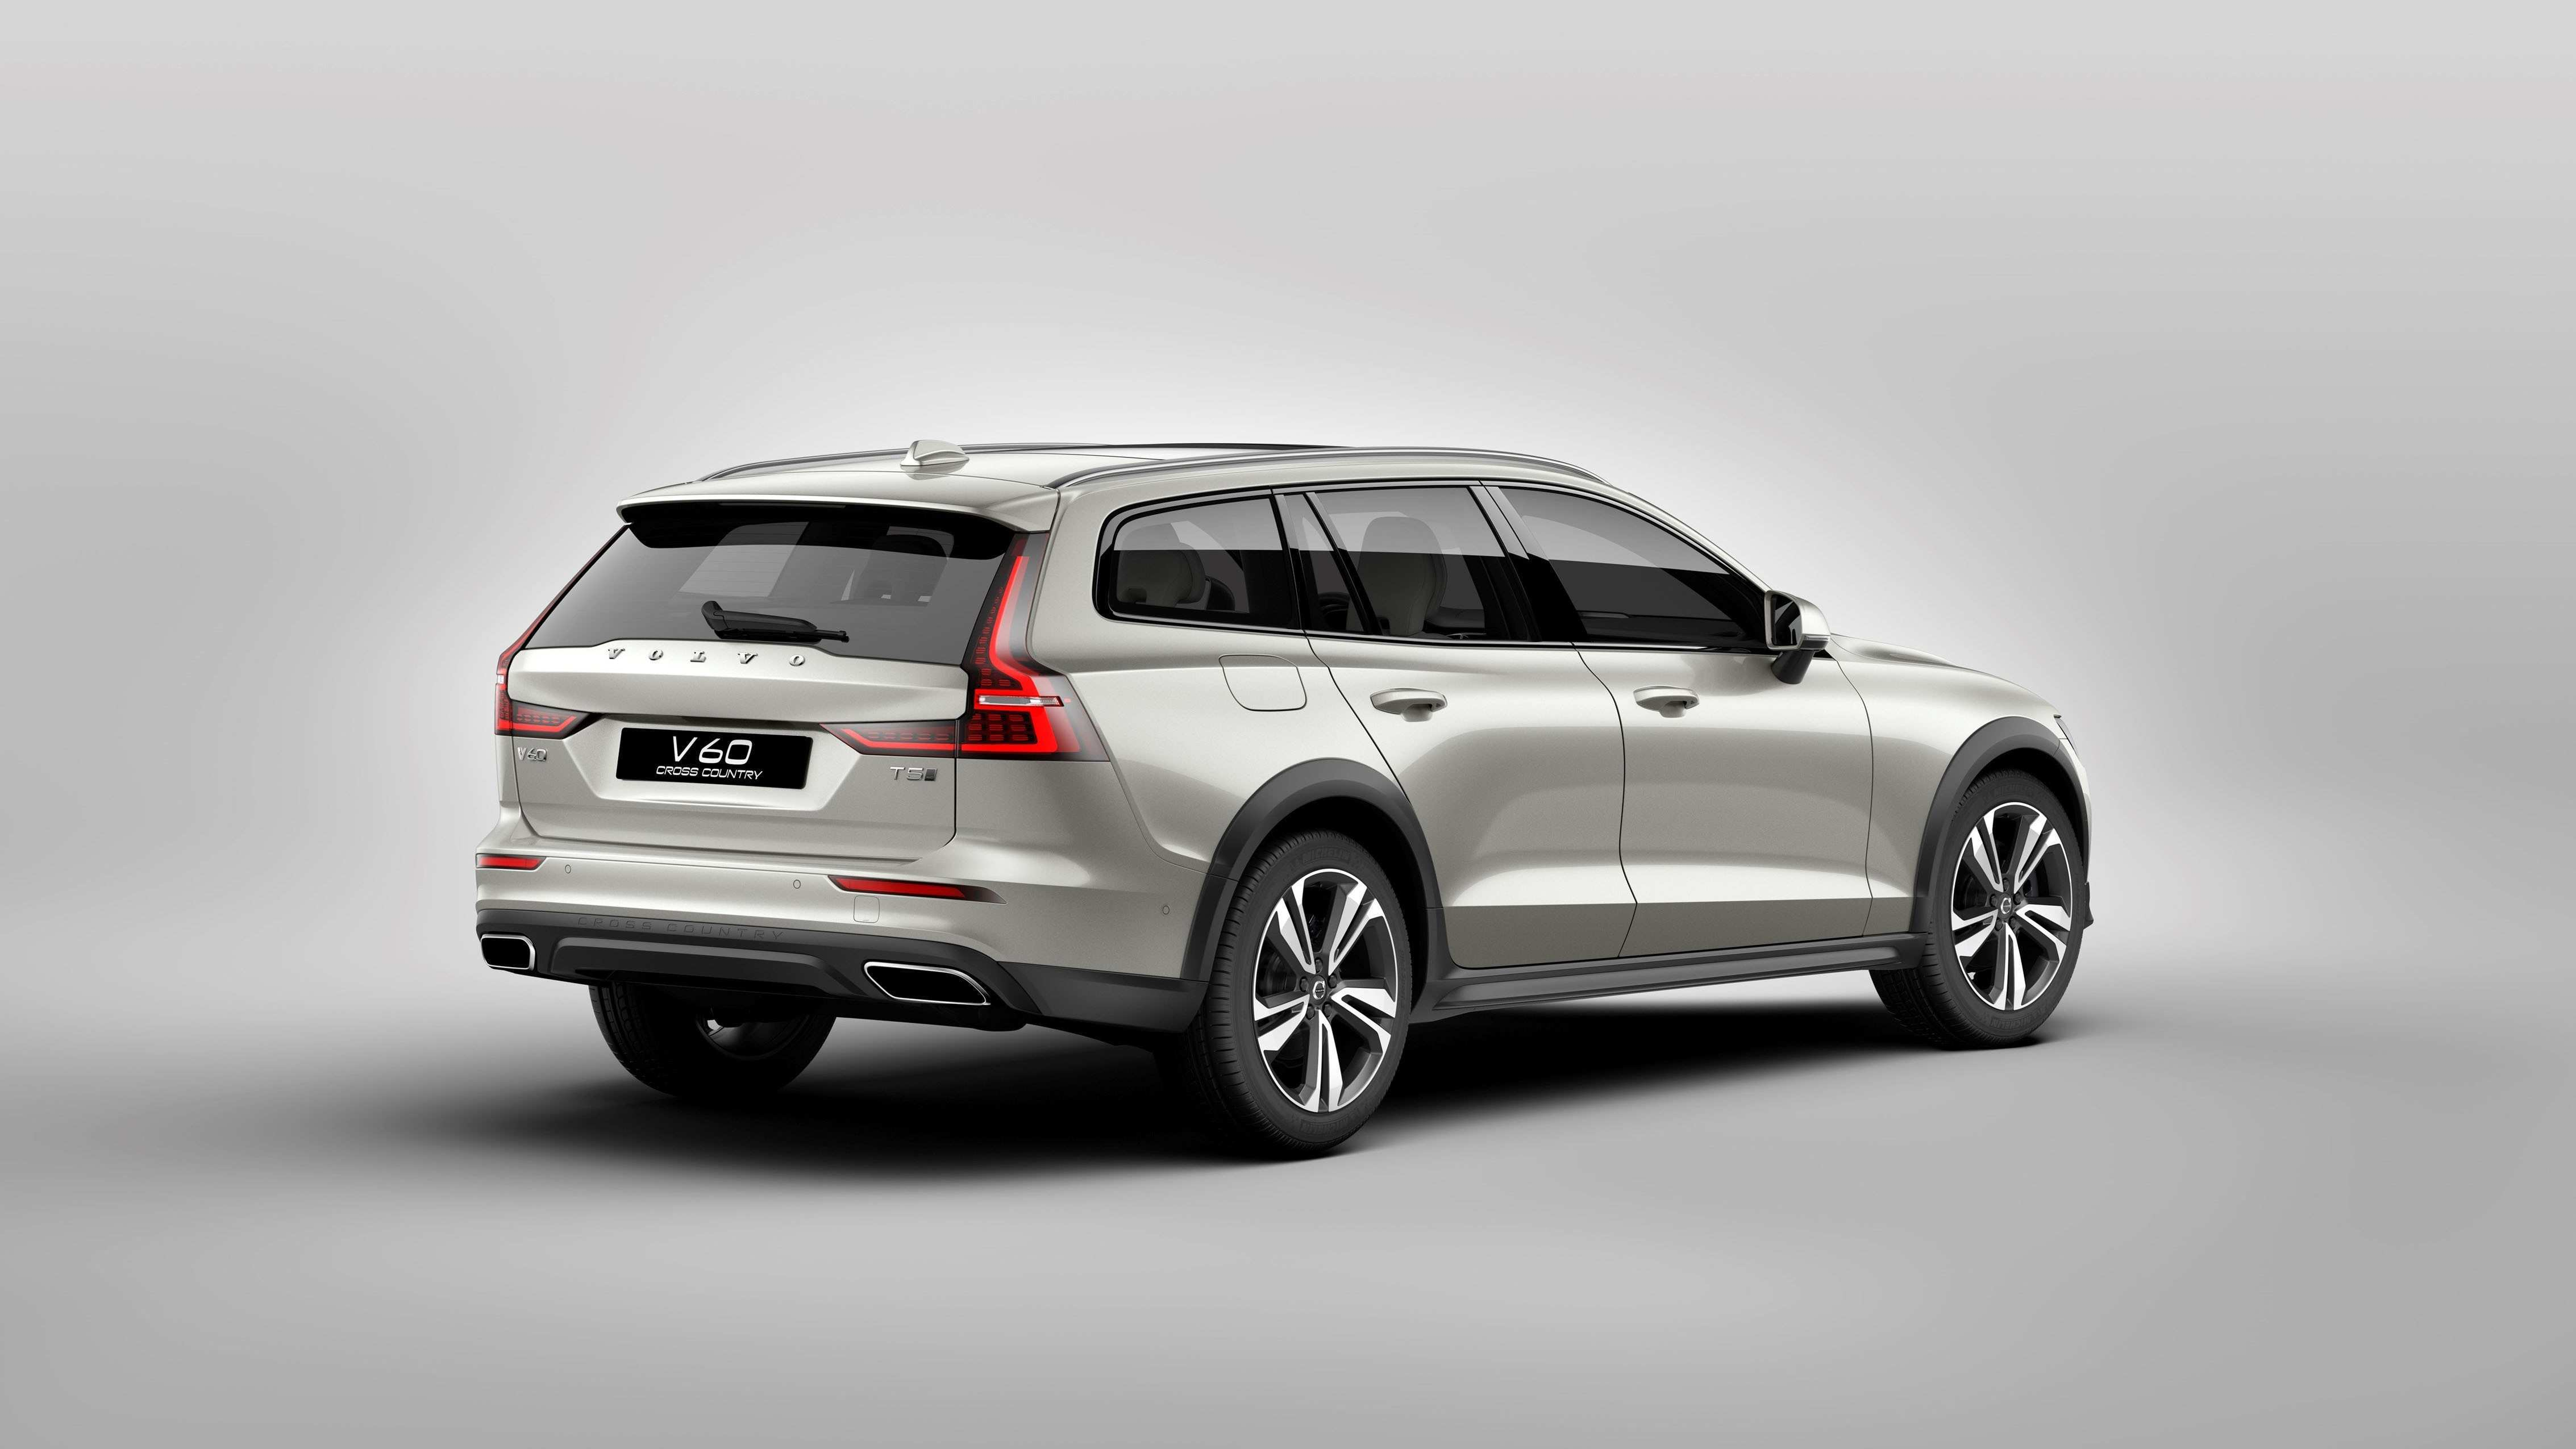 12 Concept of Volvo Wagon 2020 New Review by Volvo Wagon 2020